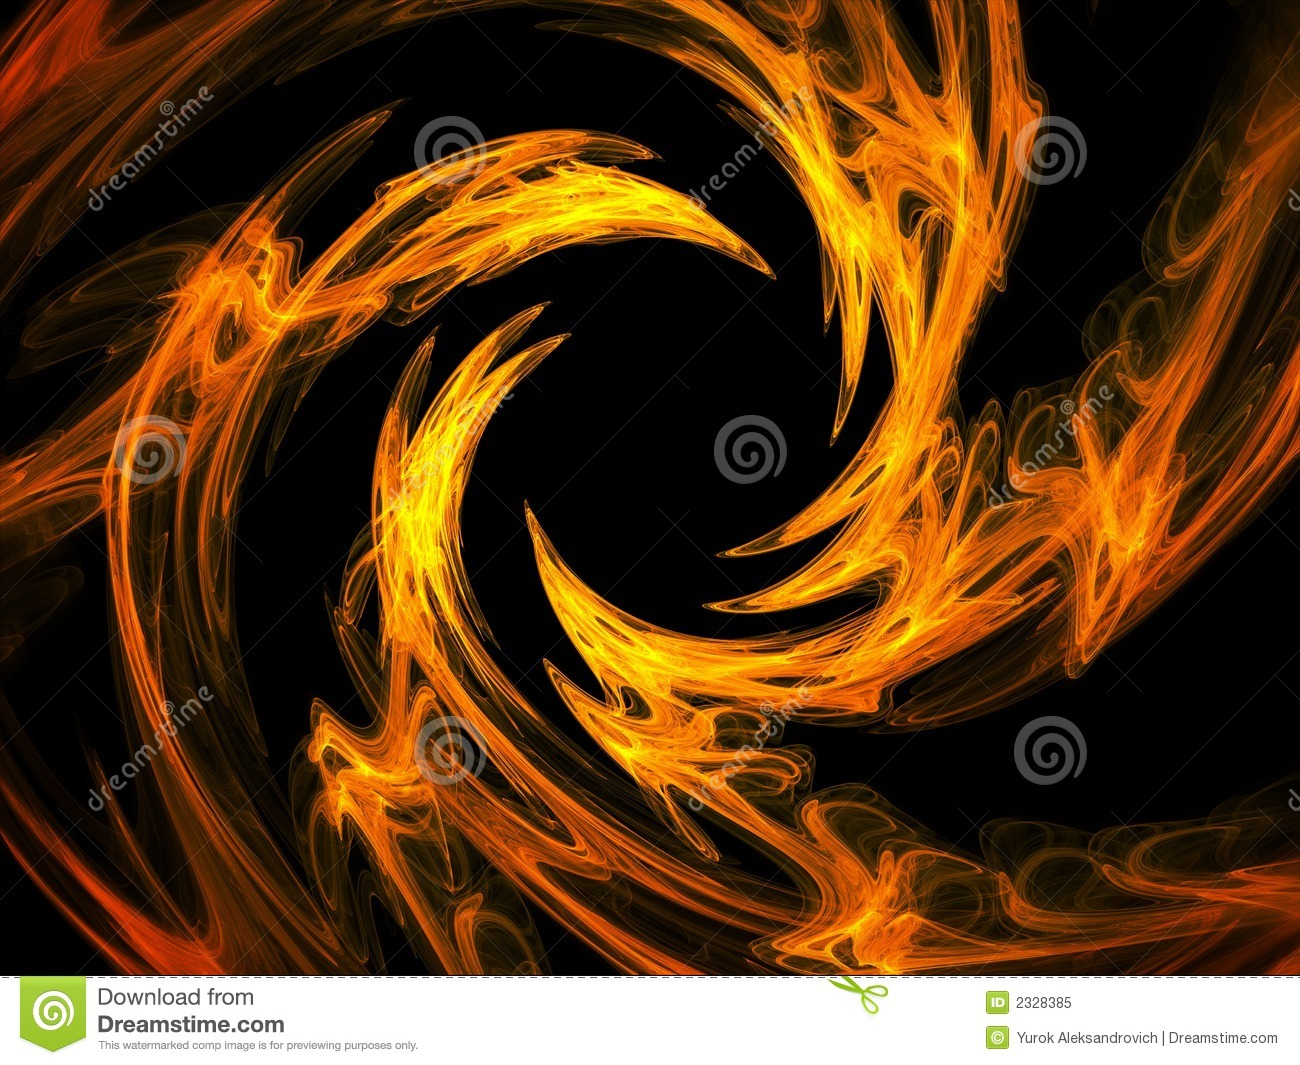 fire swirl royalty free stock photo image 2328385. Black Bedroom Furniture Sets. Home Design Ideas